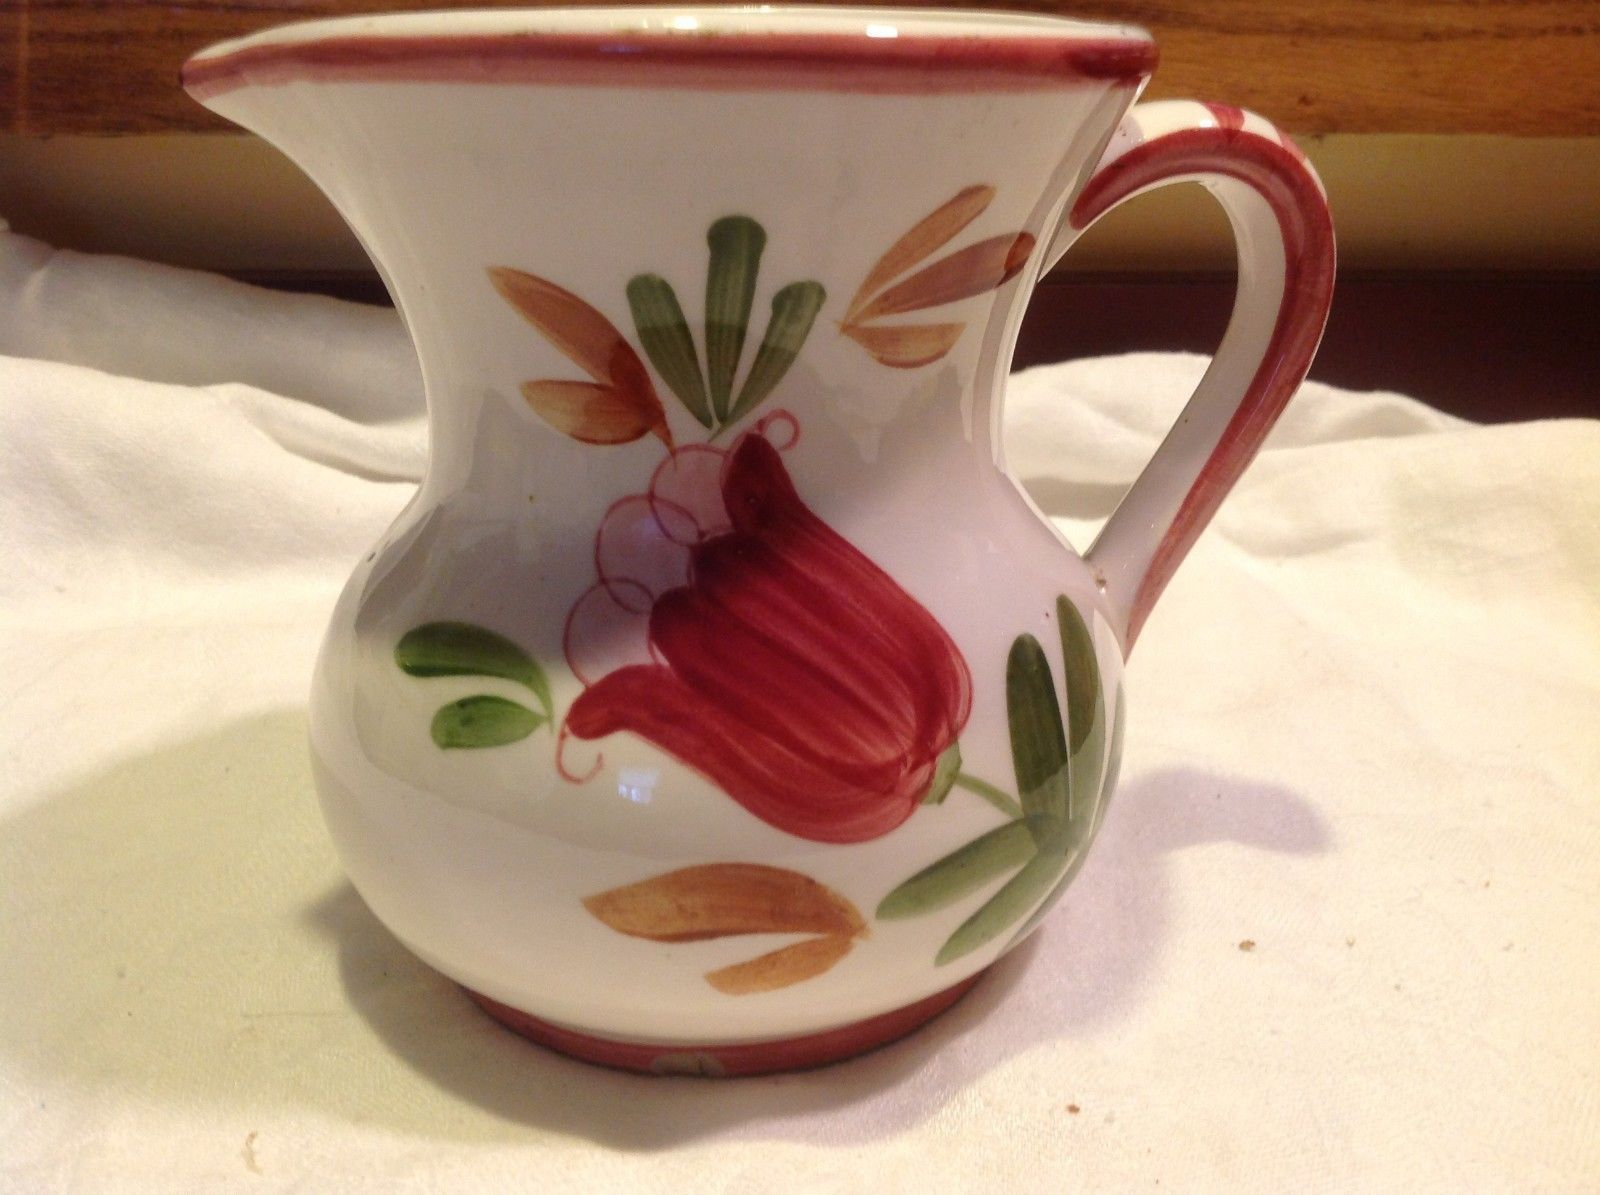 Relpo mid 1900s vintage majolica style floral ceramic pitcher